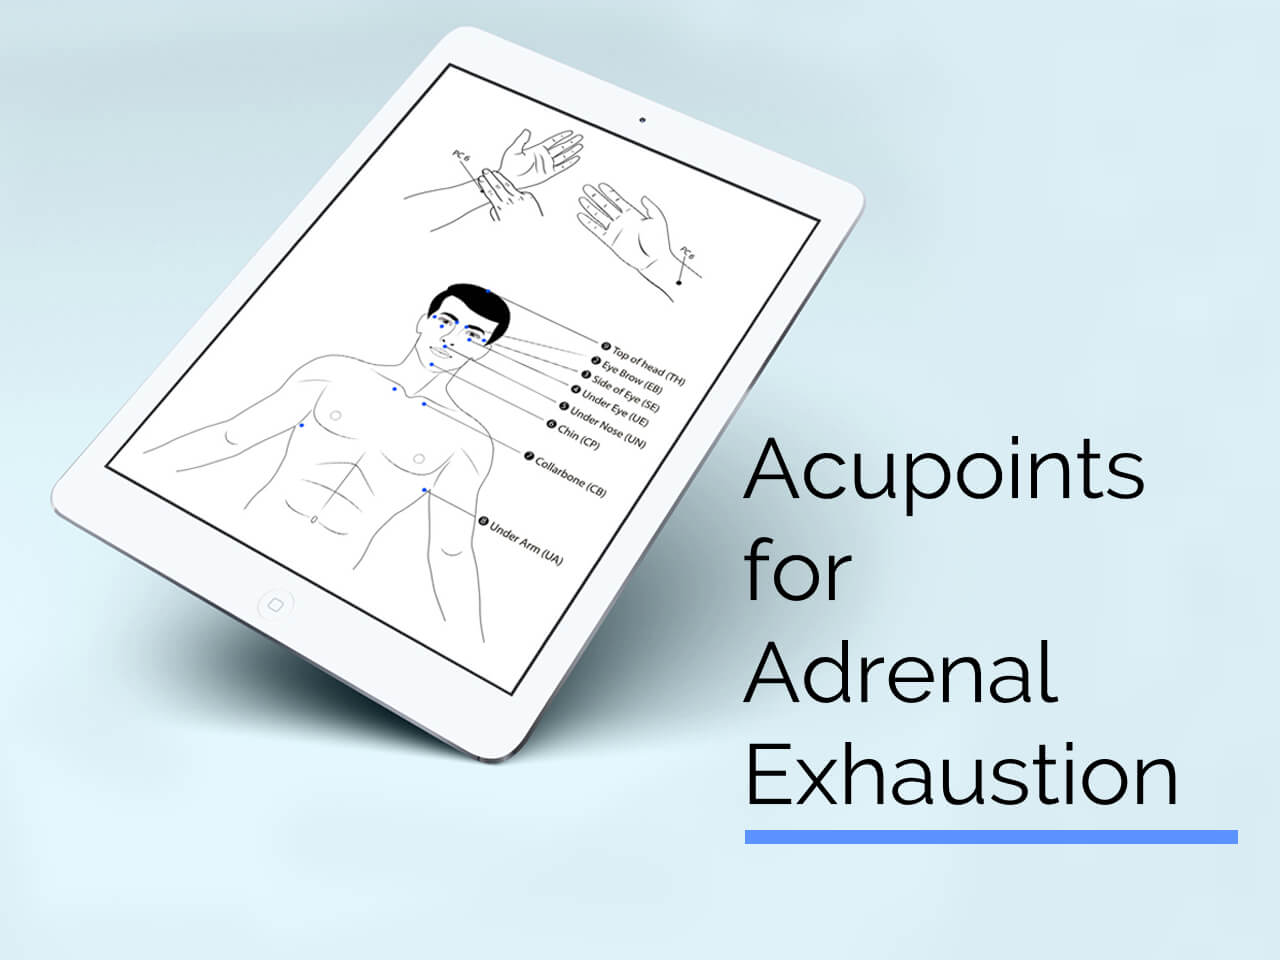 acupoints for adrenal exhaustion header image